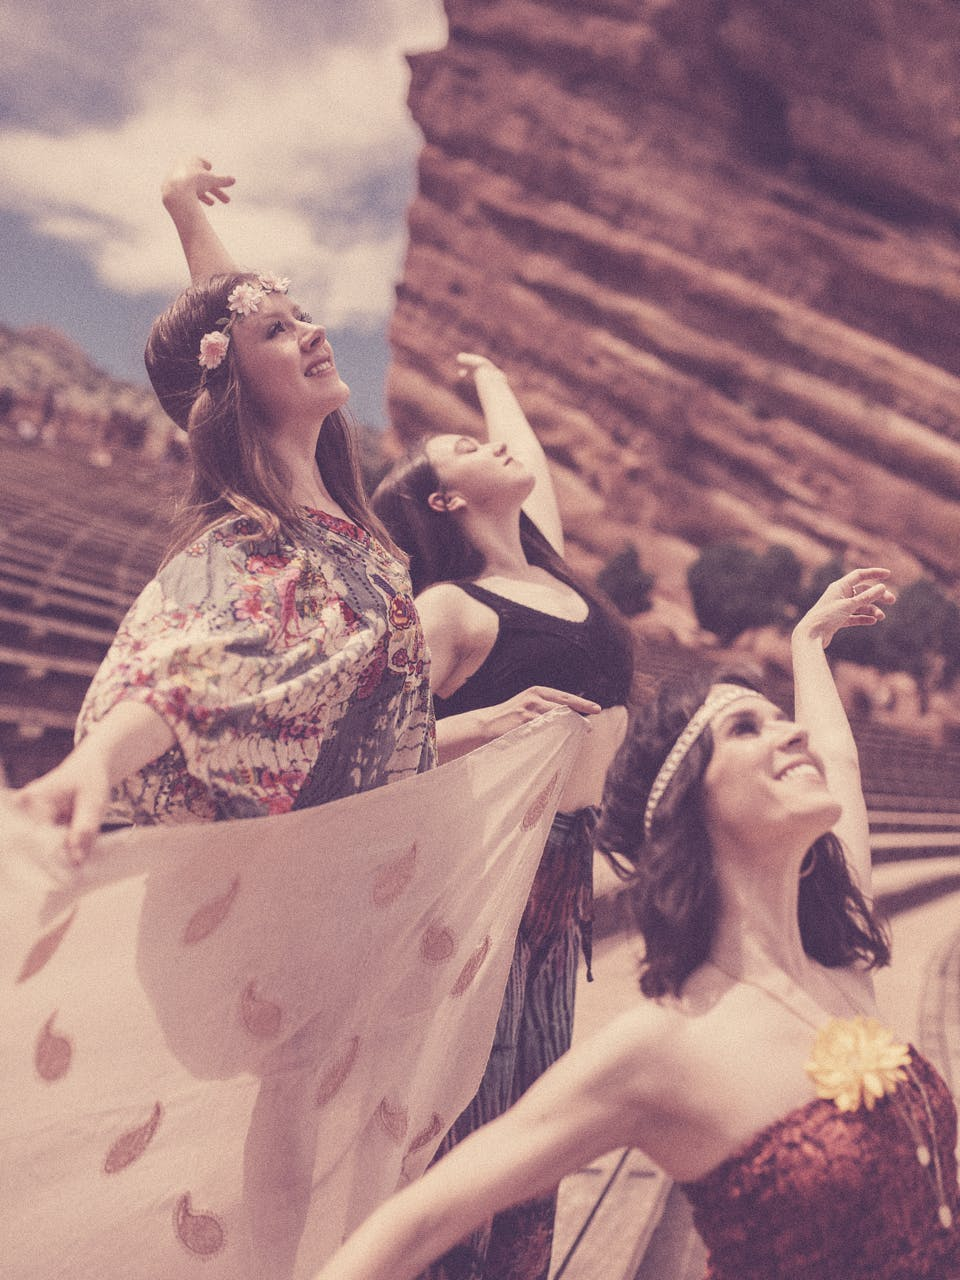 Reformation Dance Company: Summer of Love